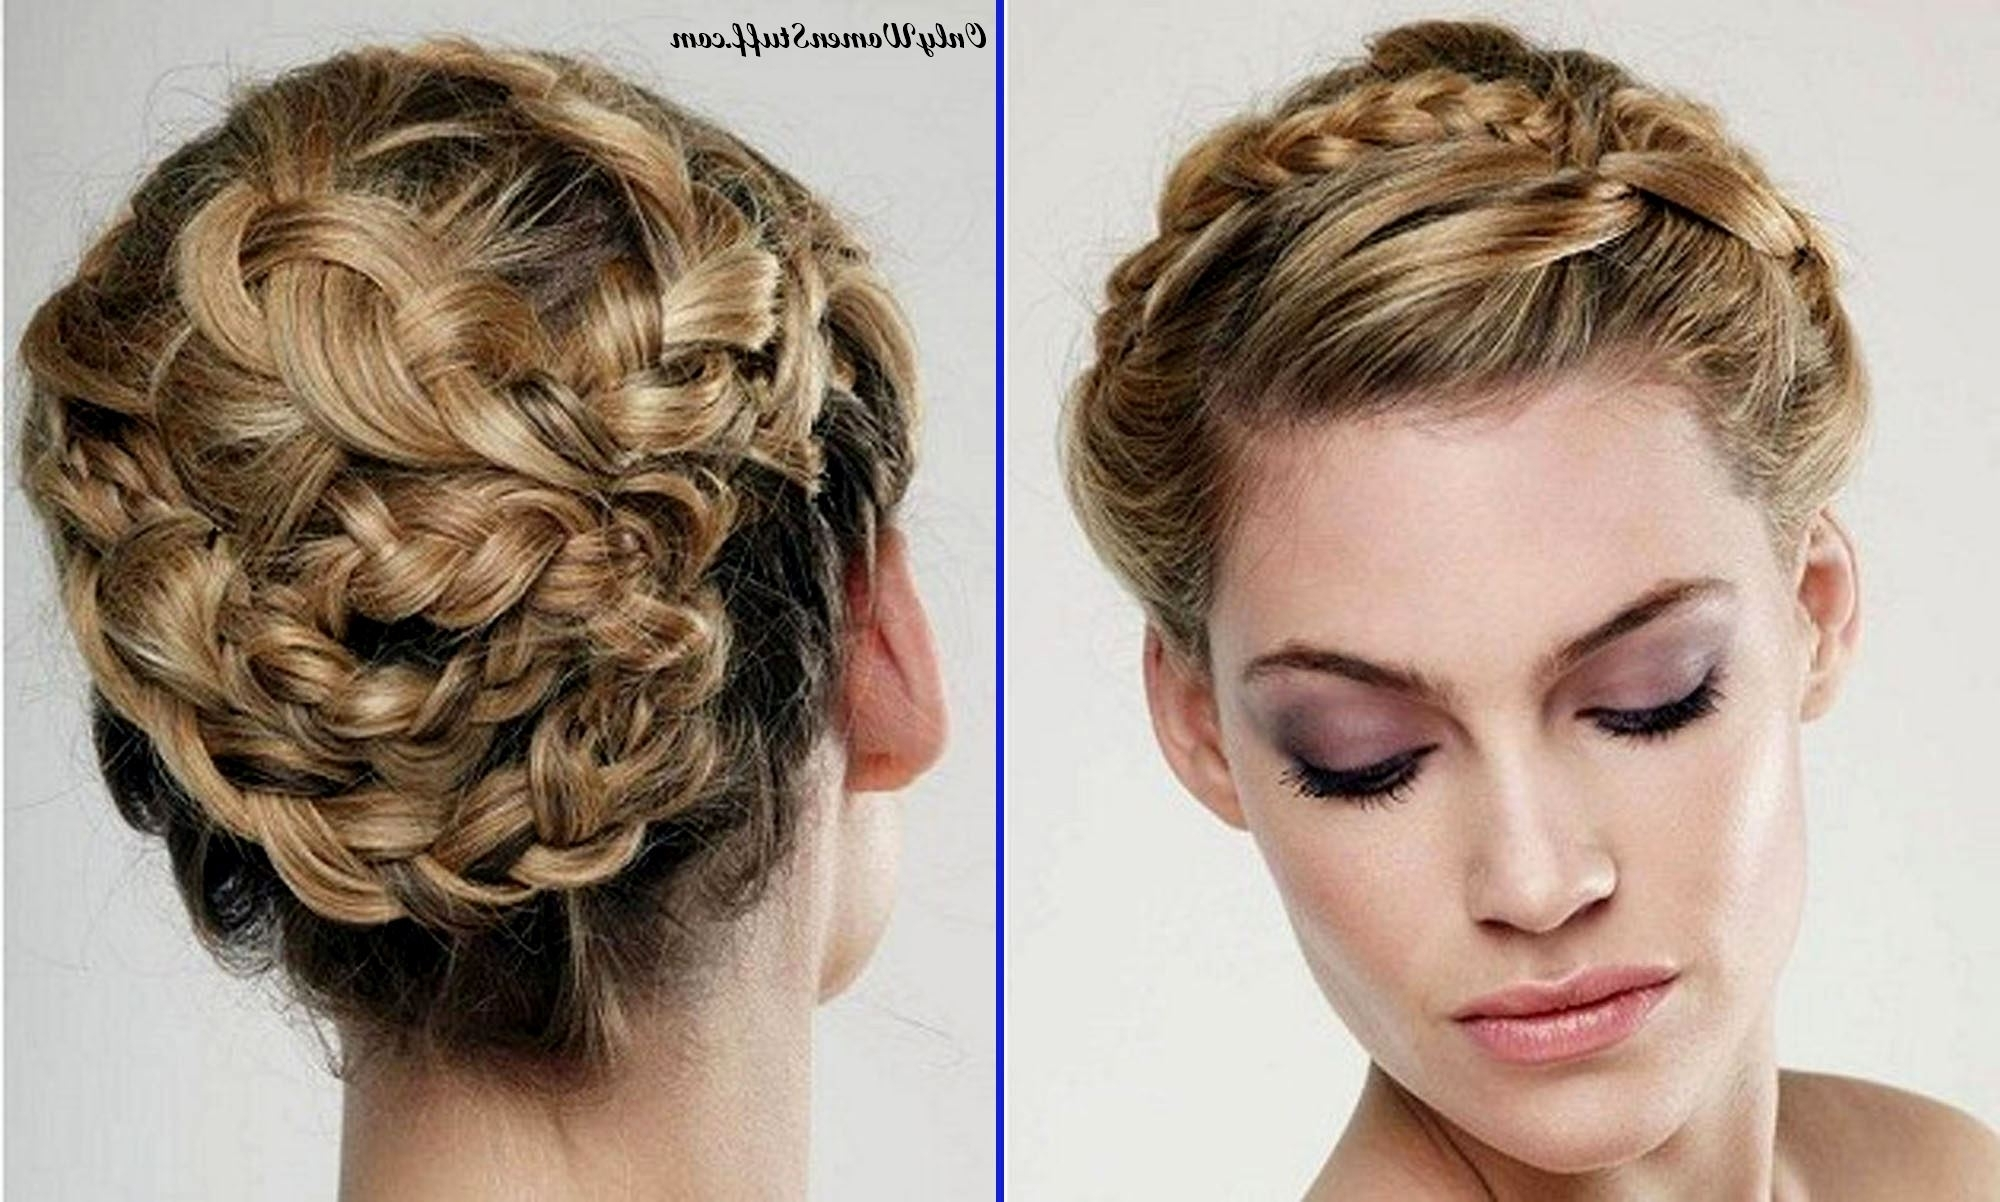 50+ Easy Prom Hairstyles & Updos Ideas (Stepstep) With Regard To Formal Short Hair Updo Hairstyles (View 6 of 15)